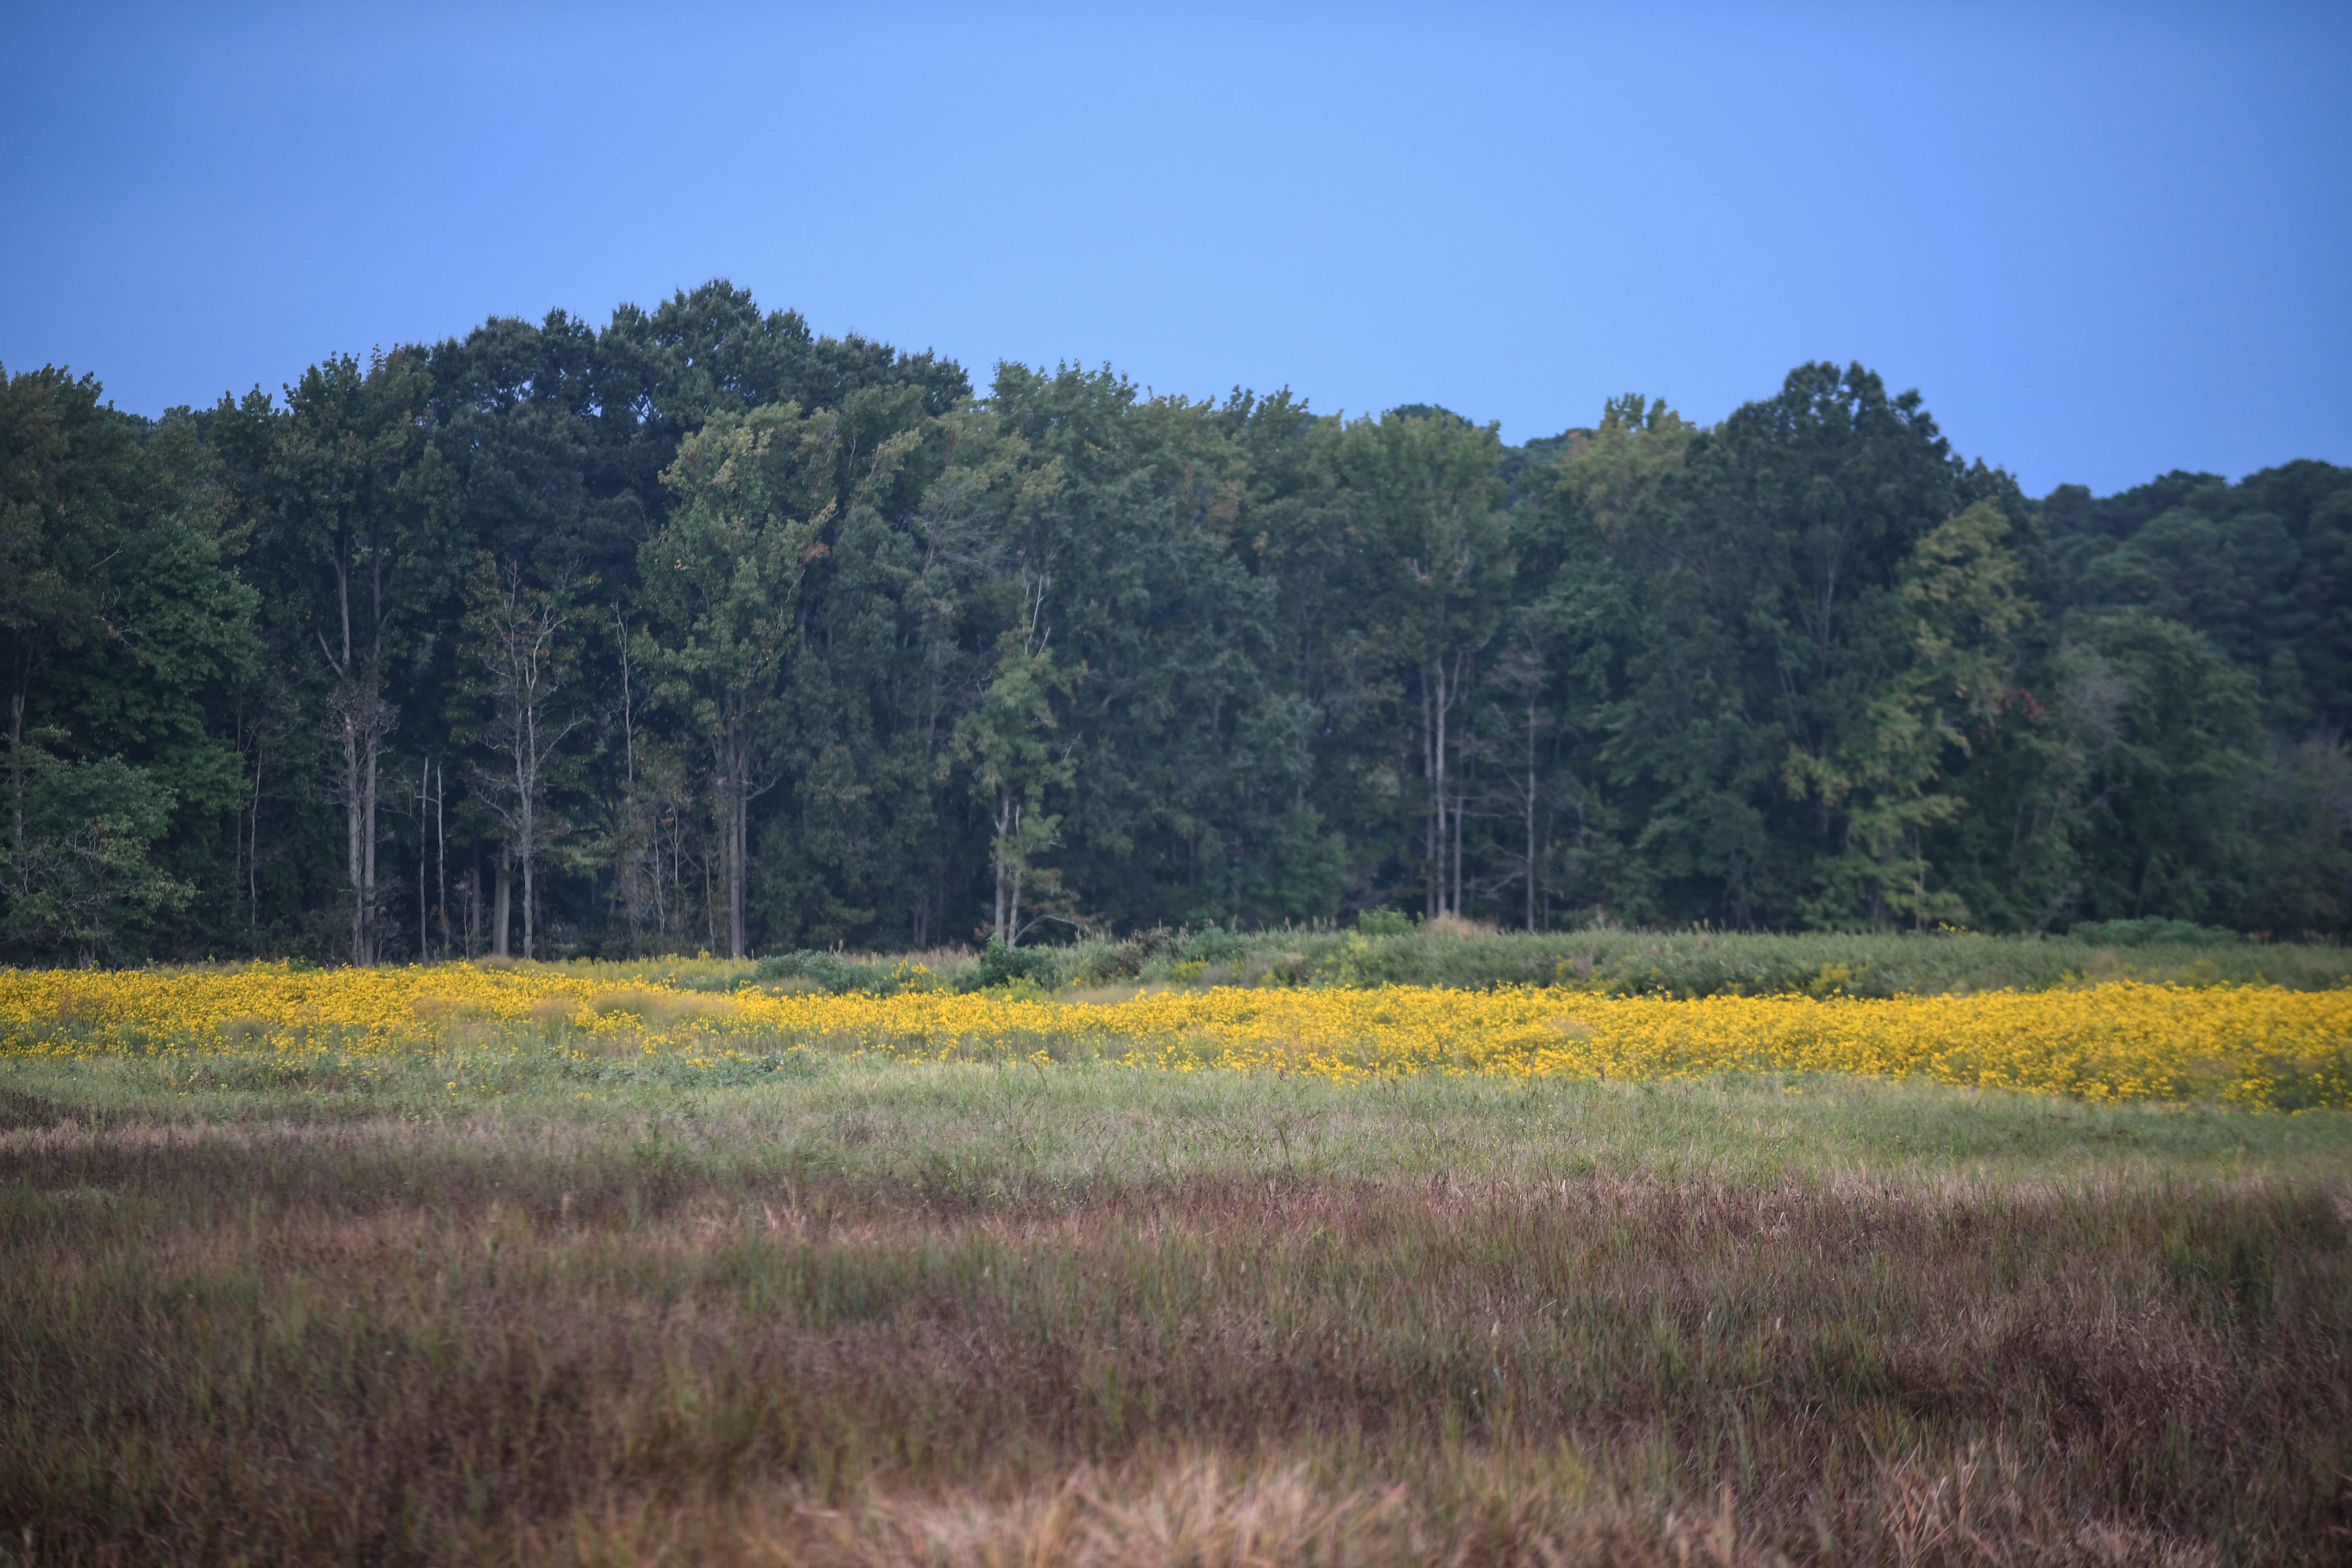 When she woke up a few days after suffering a traumatic brain injury, Harriet Tubman was put back in the field. The nearby Blackwater Wildlife Refuge is shown.